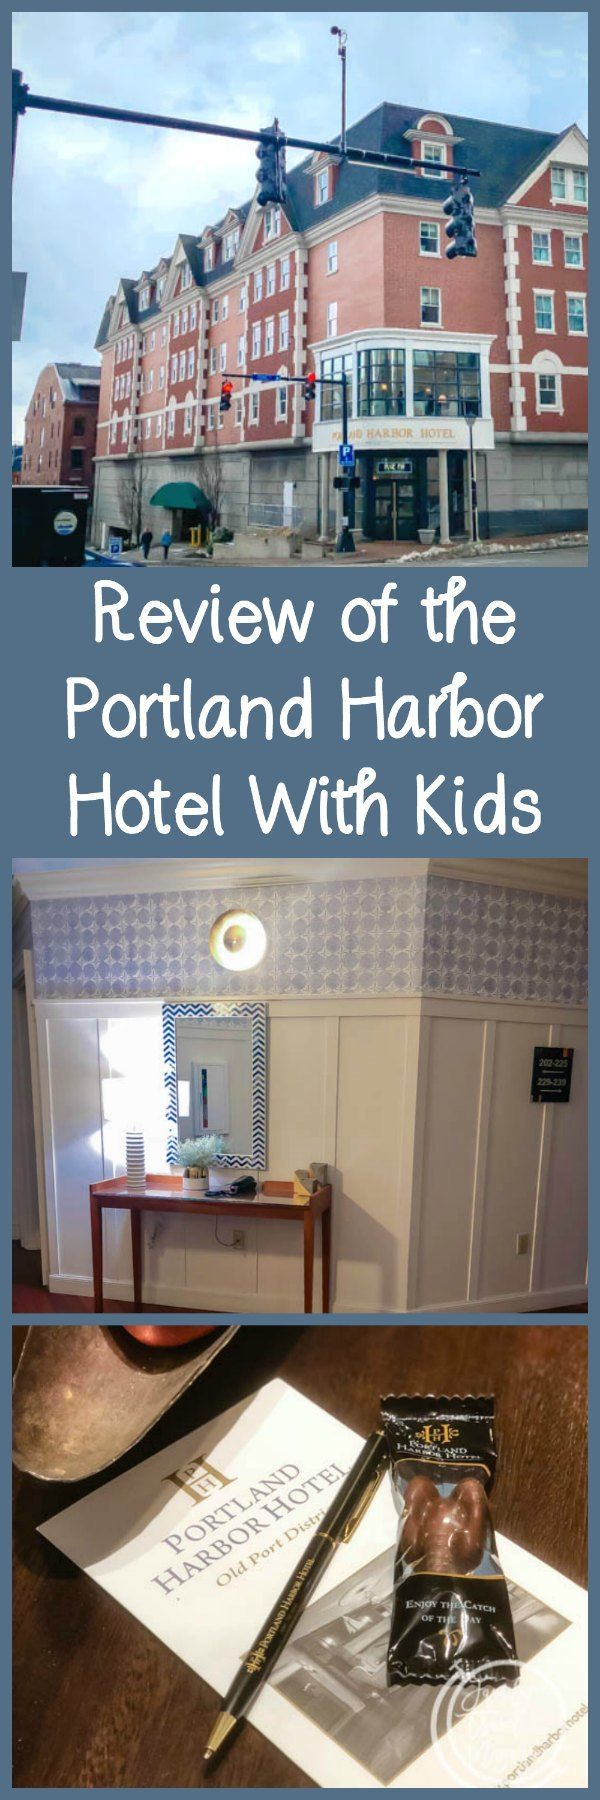 A review of the Portland Harbor Hotel, a luxury kid-friendly boutique hotel located right in Portland Maine's popular Old Port neighborhood.